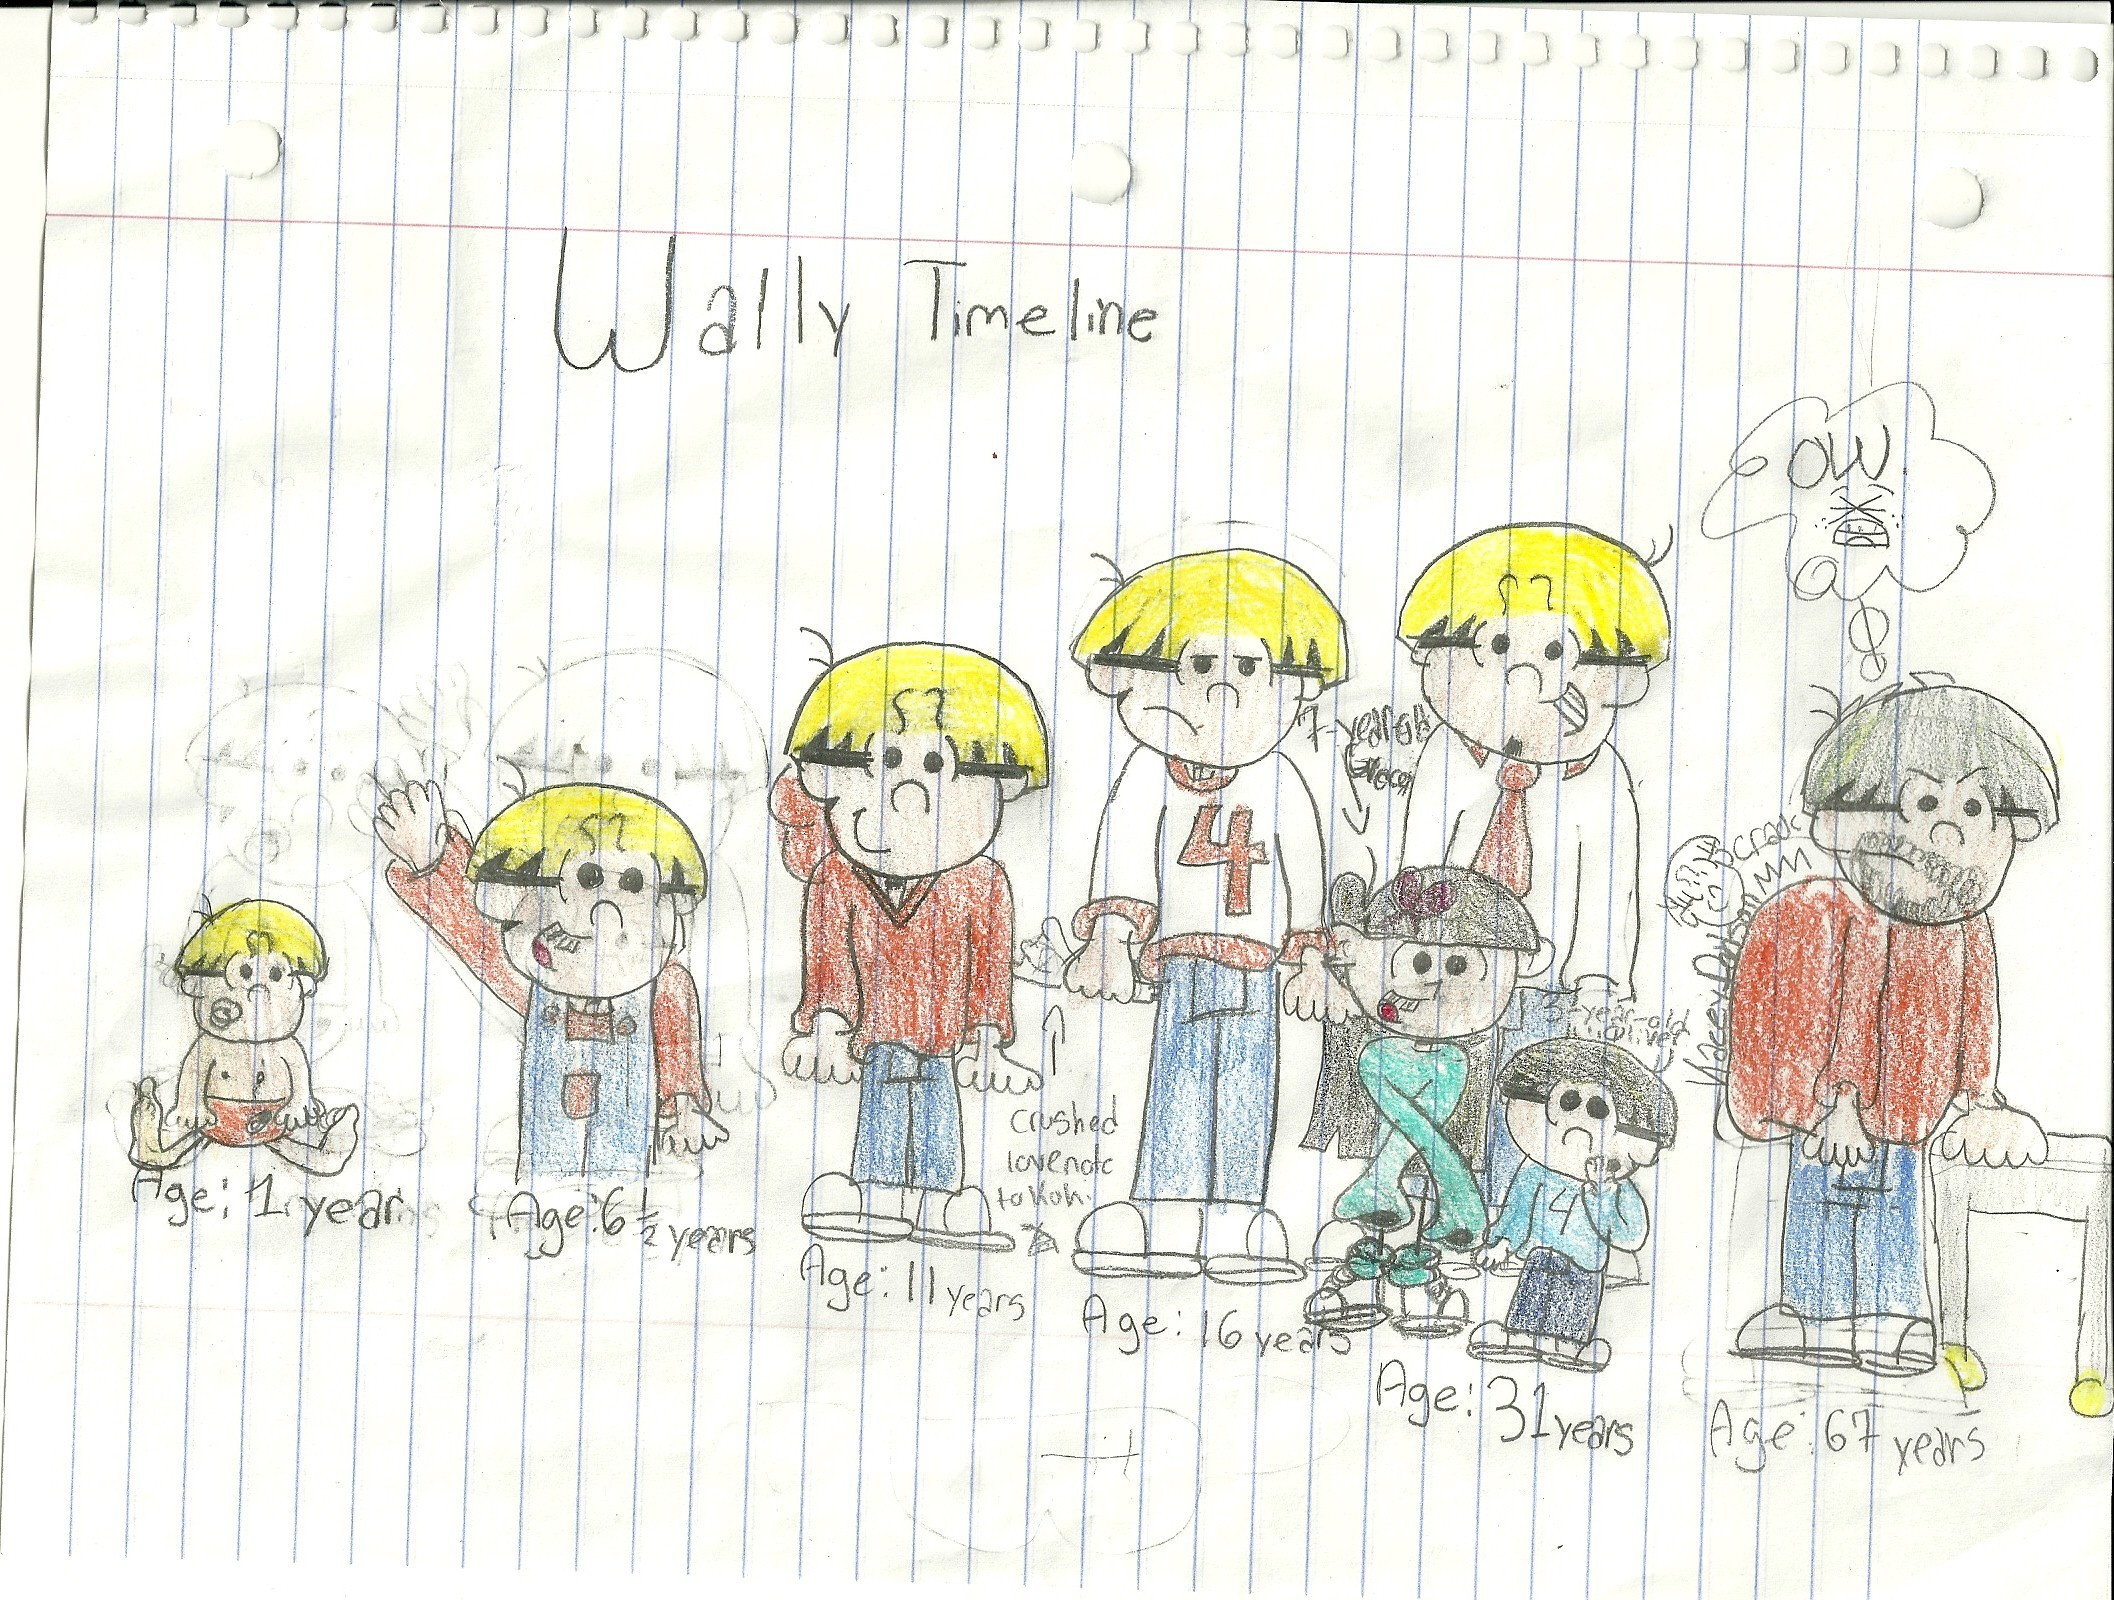 Wally Timeline (Wally Throughout the Years, Watch Wally Grow)